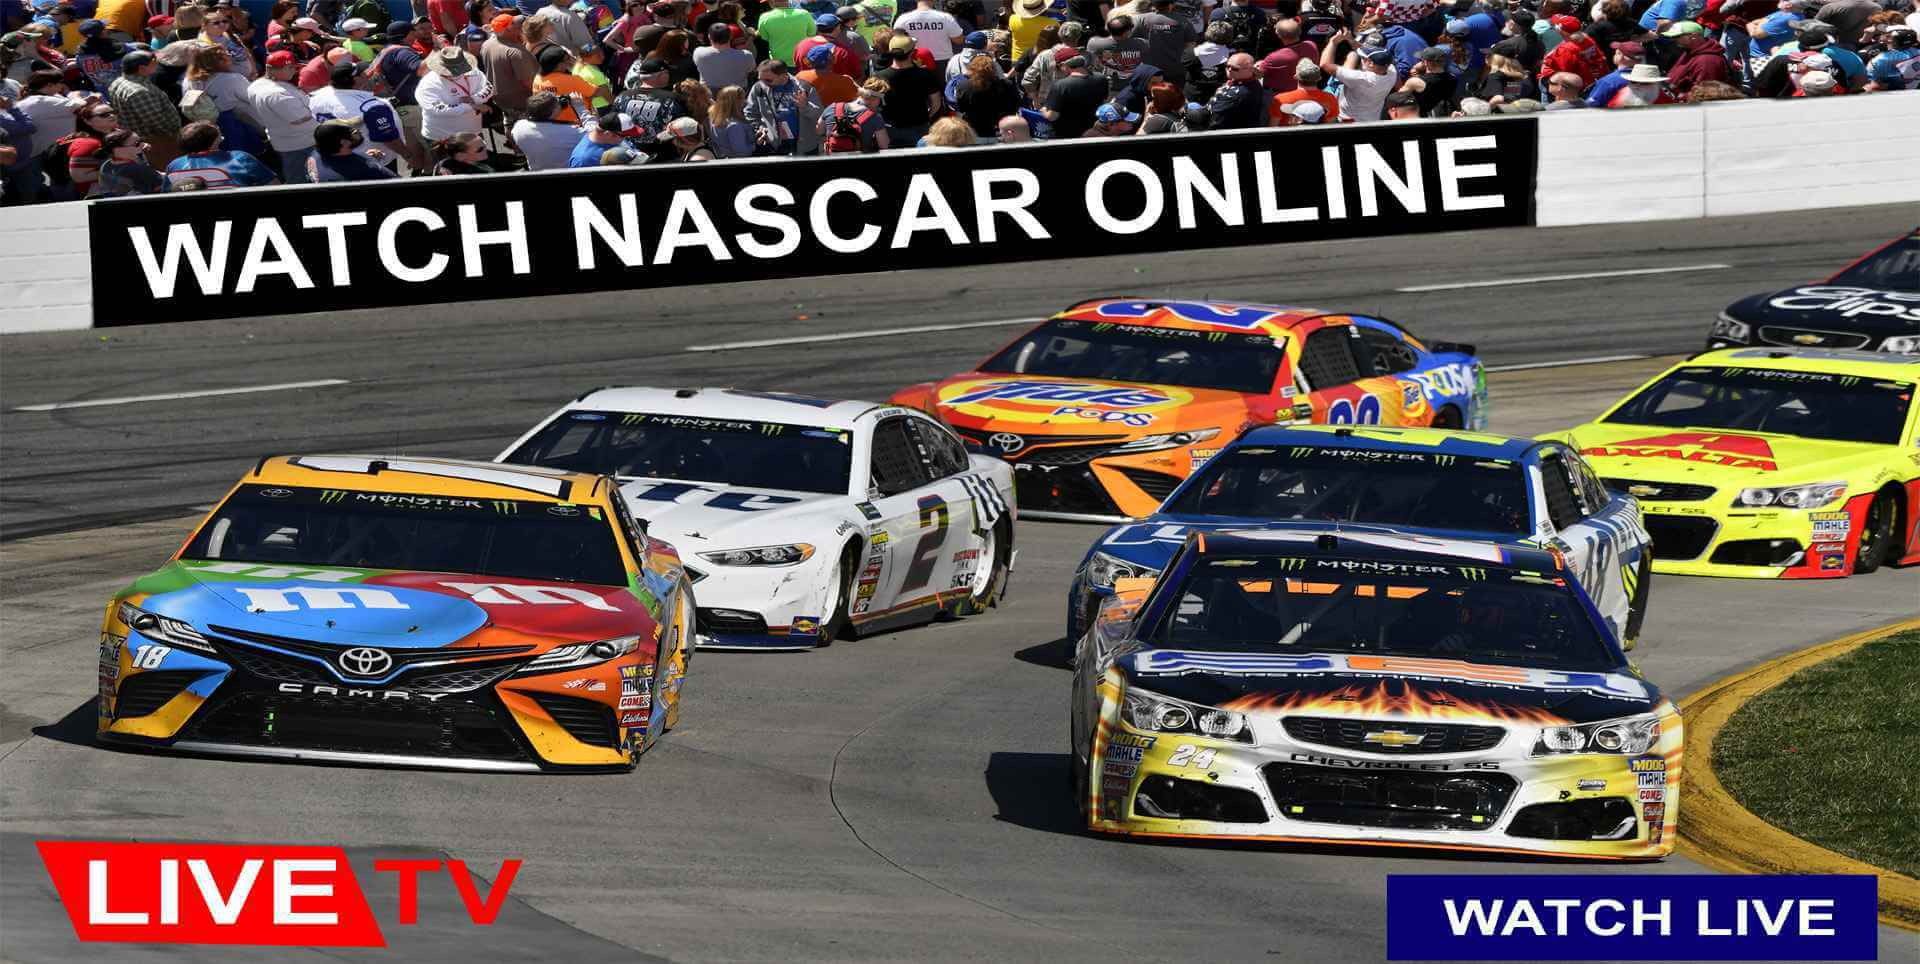 Watch NASCAR Online 2019 | NASCAR Live Stream, Highlights, Schedule & Results slider